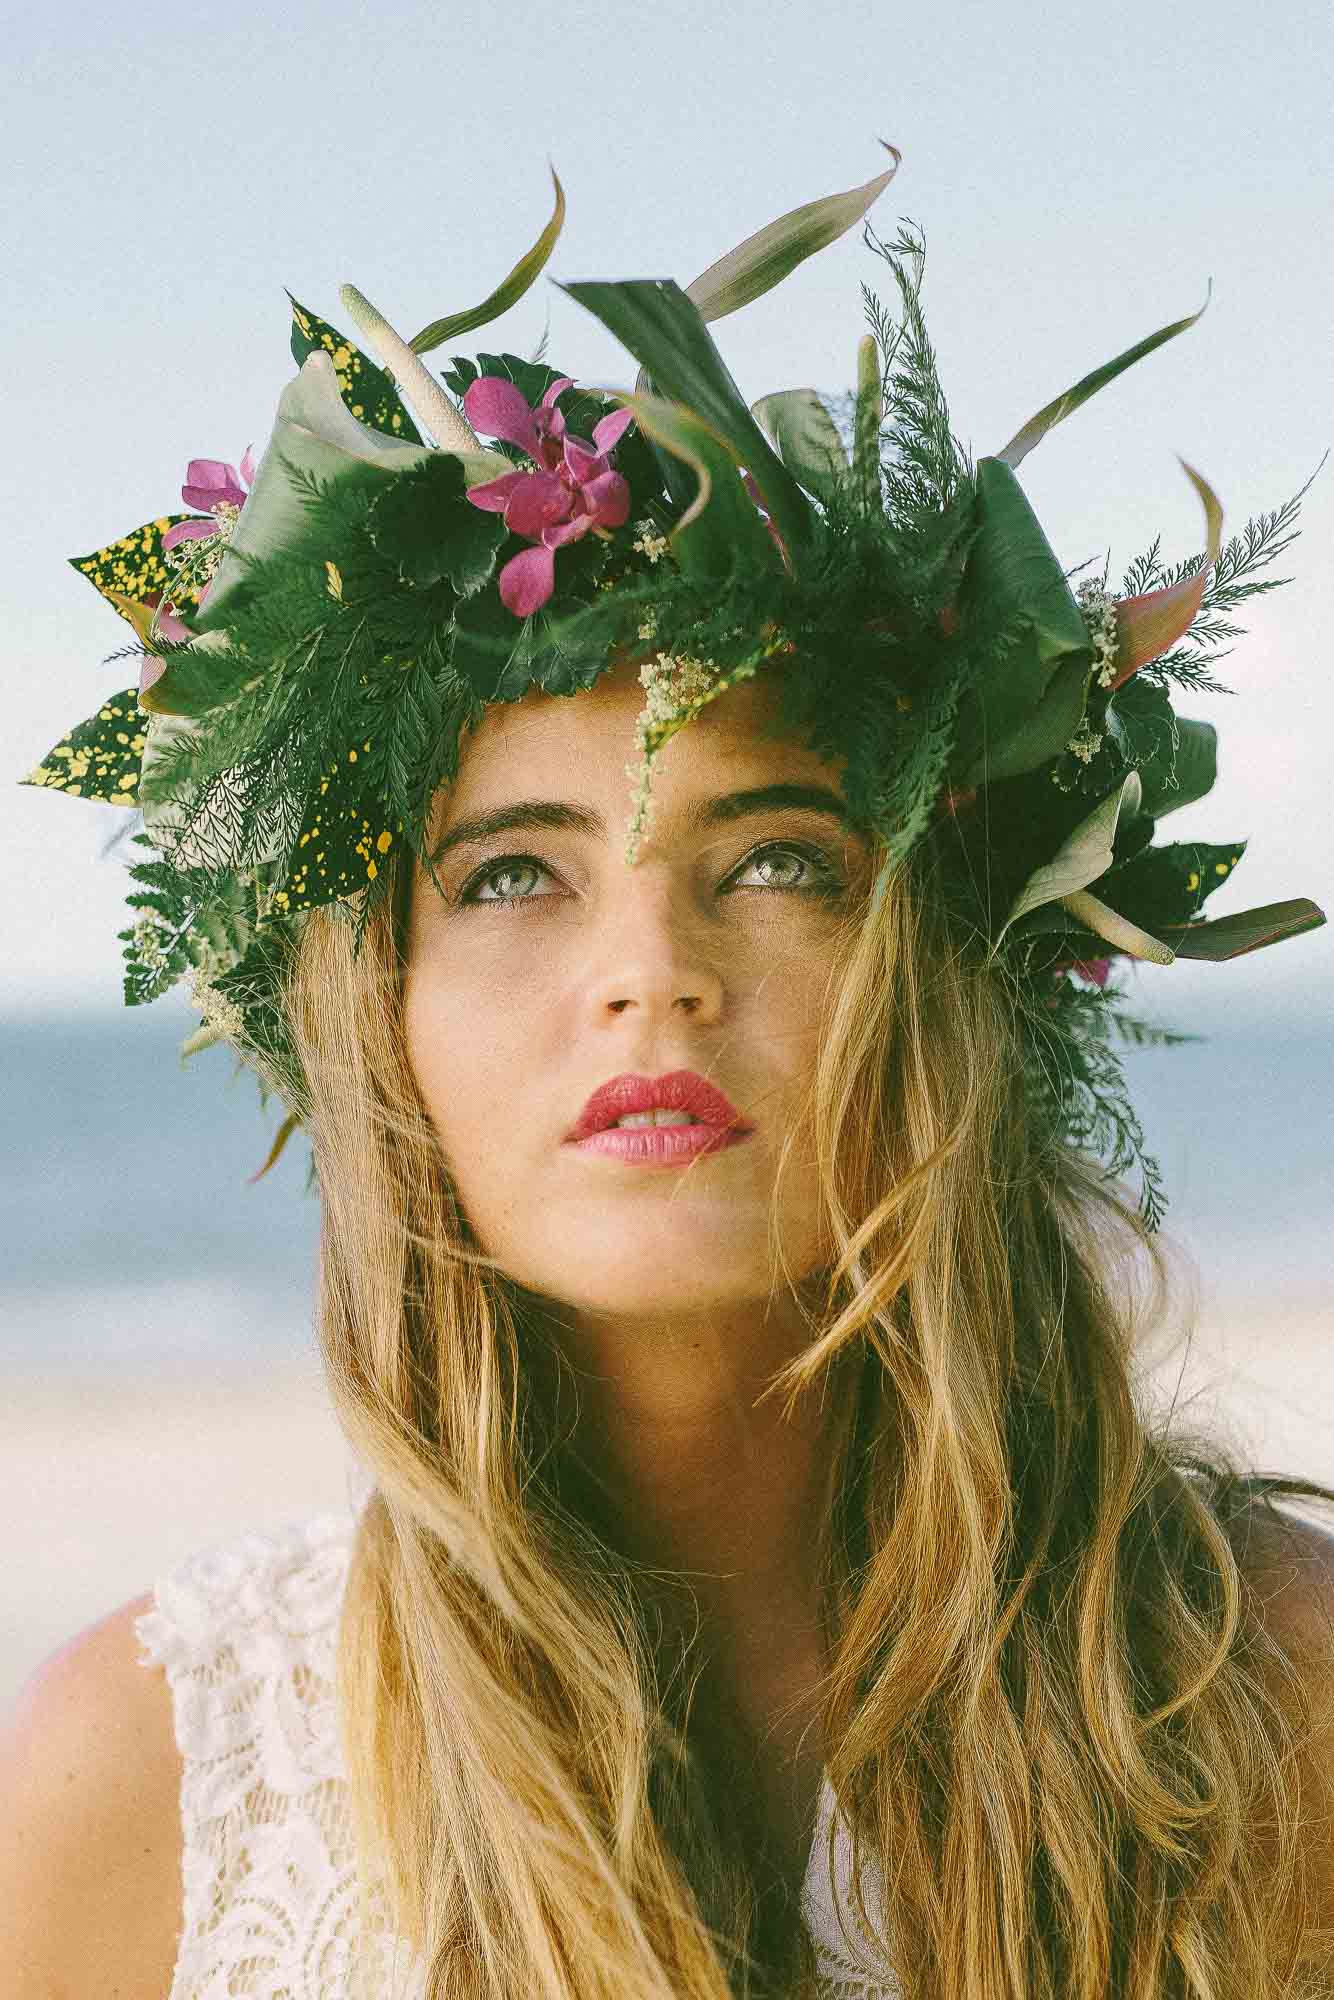 Model with floral headpiece on beach